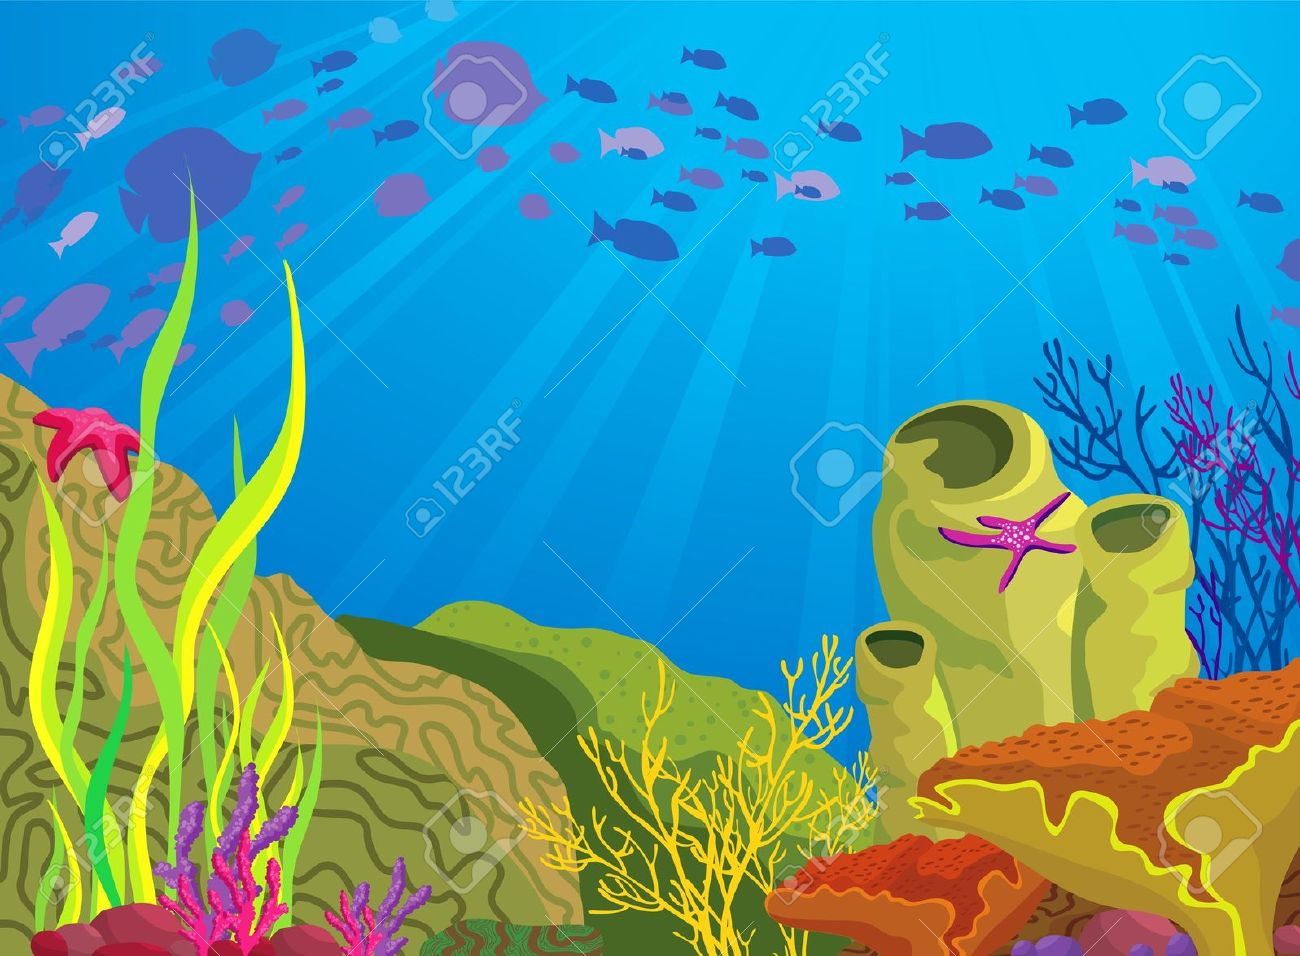 Coral reef background clipart.